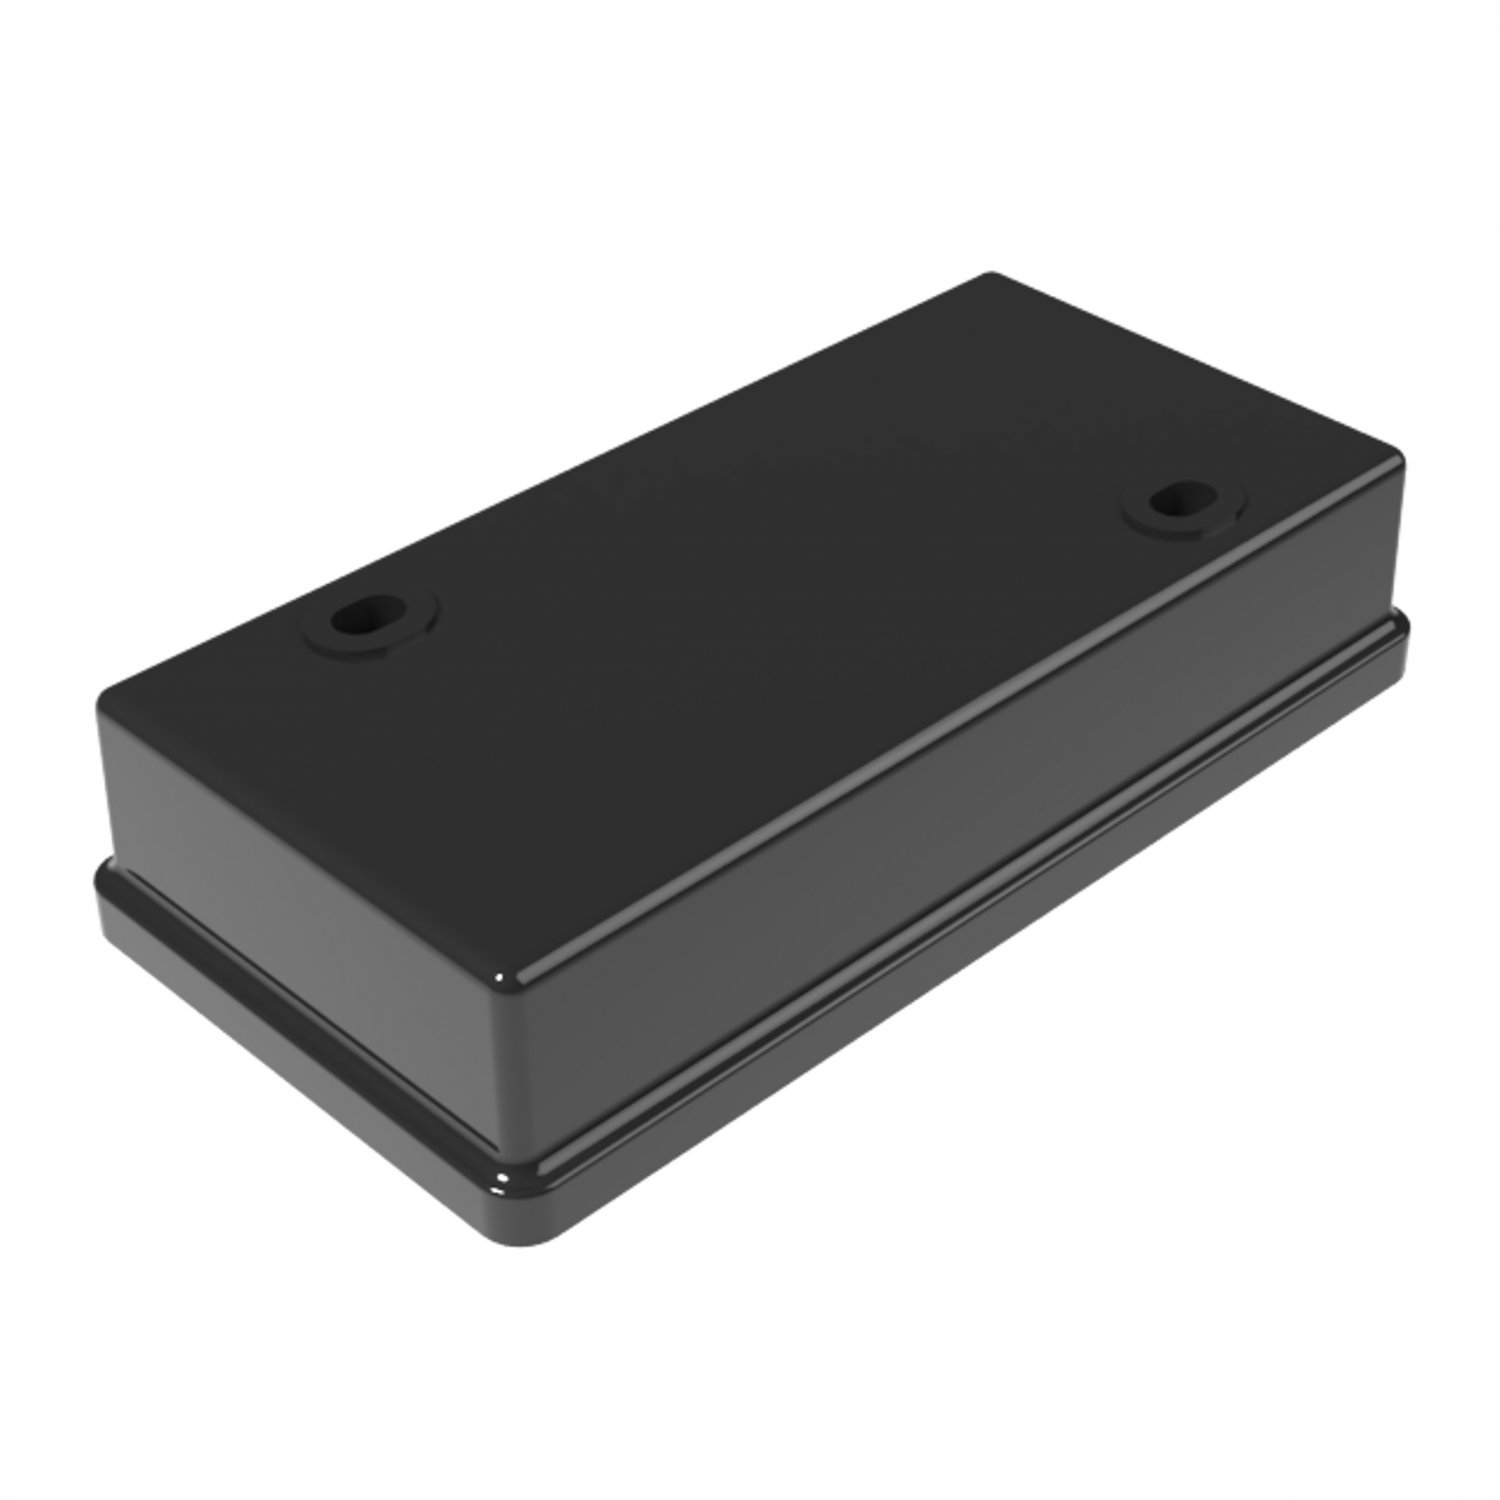 WJB-100 - GPS Trailer Tracking Tracking Lid for 7-Pin Junction Box